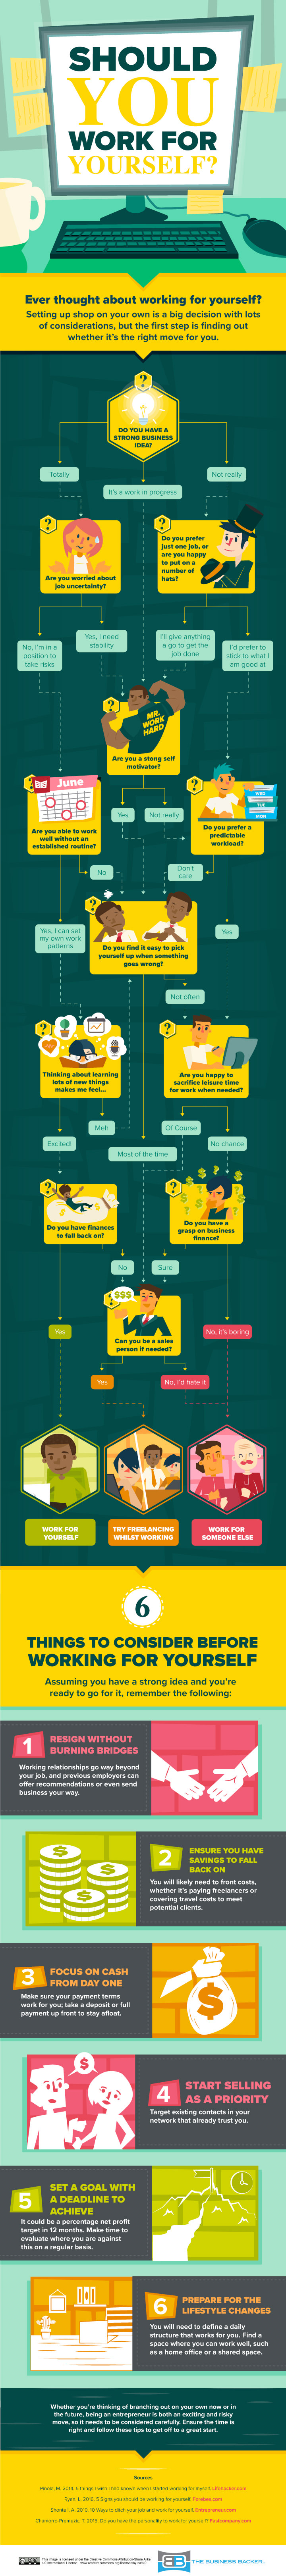 should you work for yourself infographic